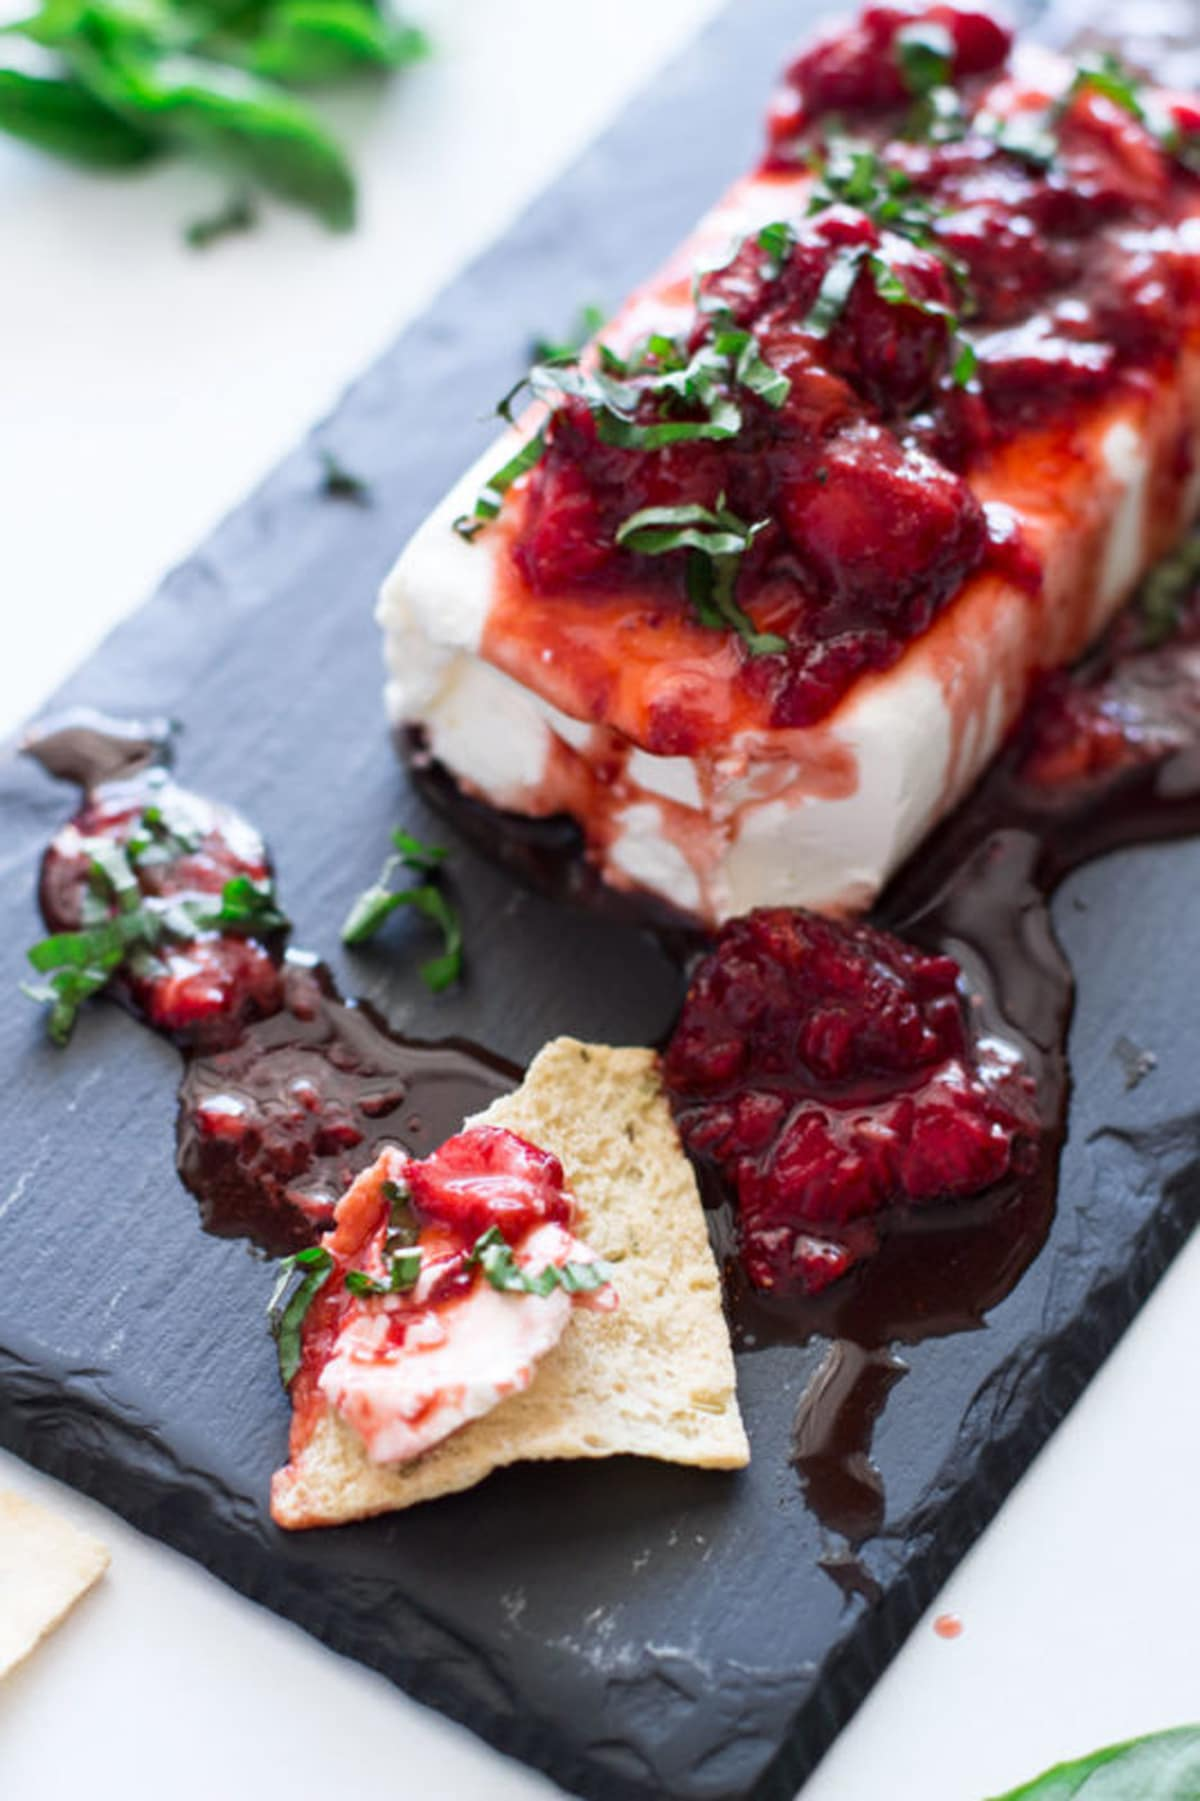 Cream cheese dip served on a pita chip topped with strawberry basil sauce.